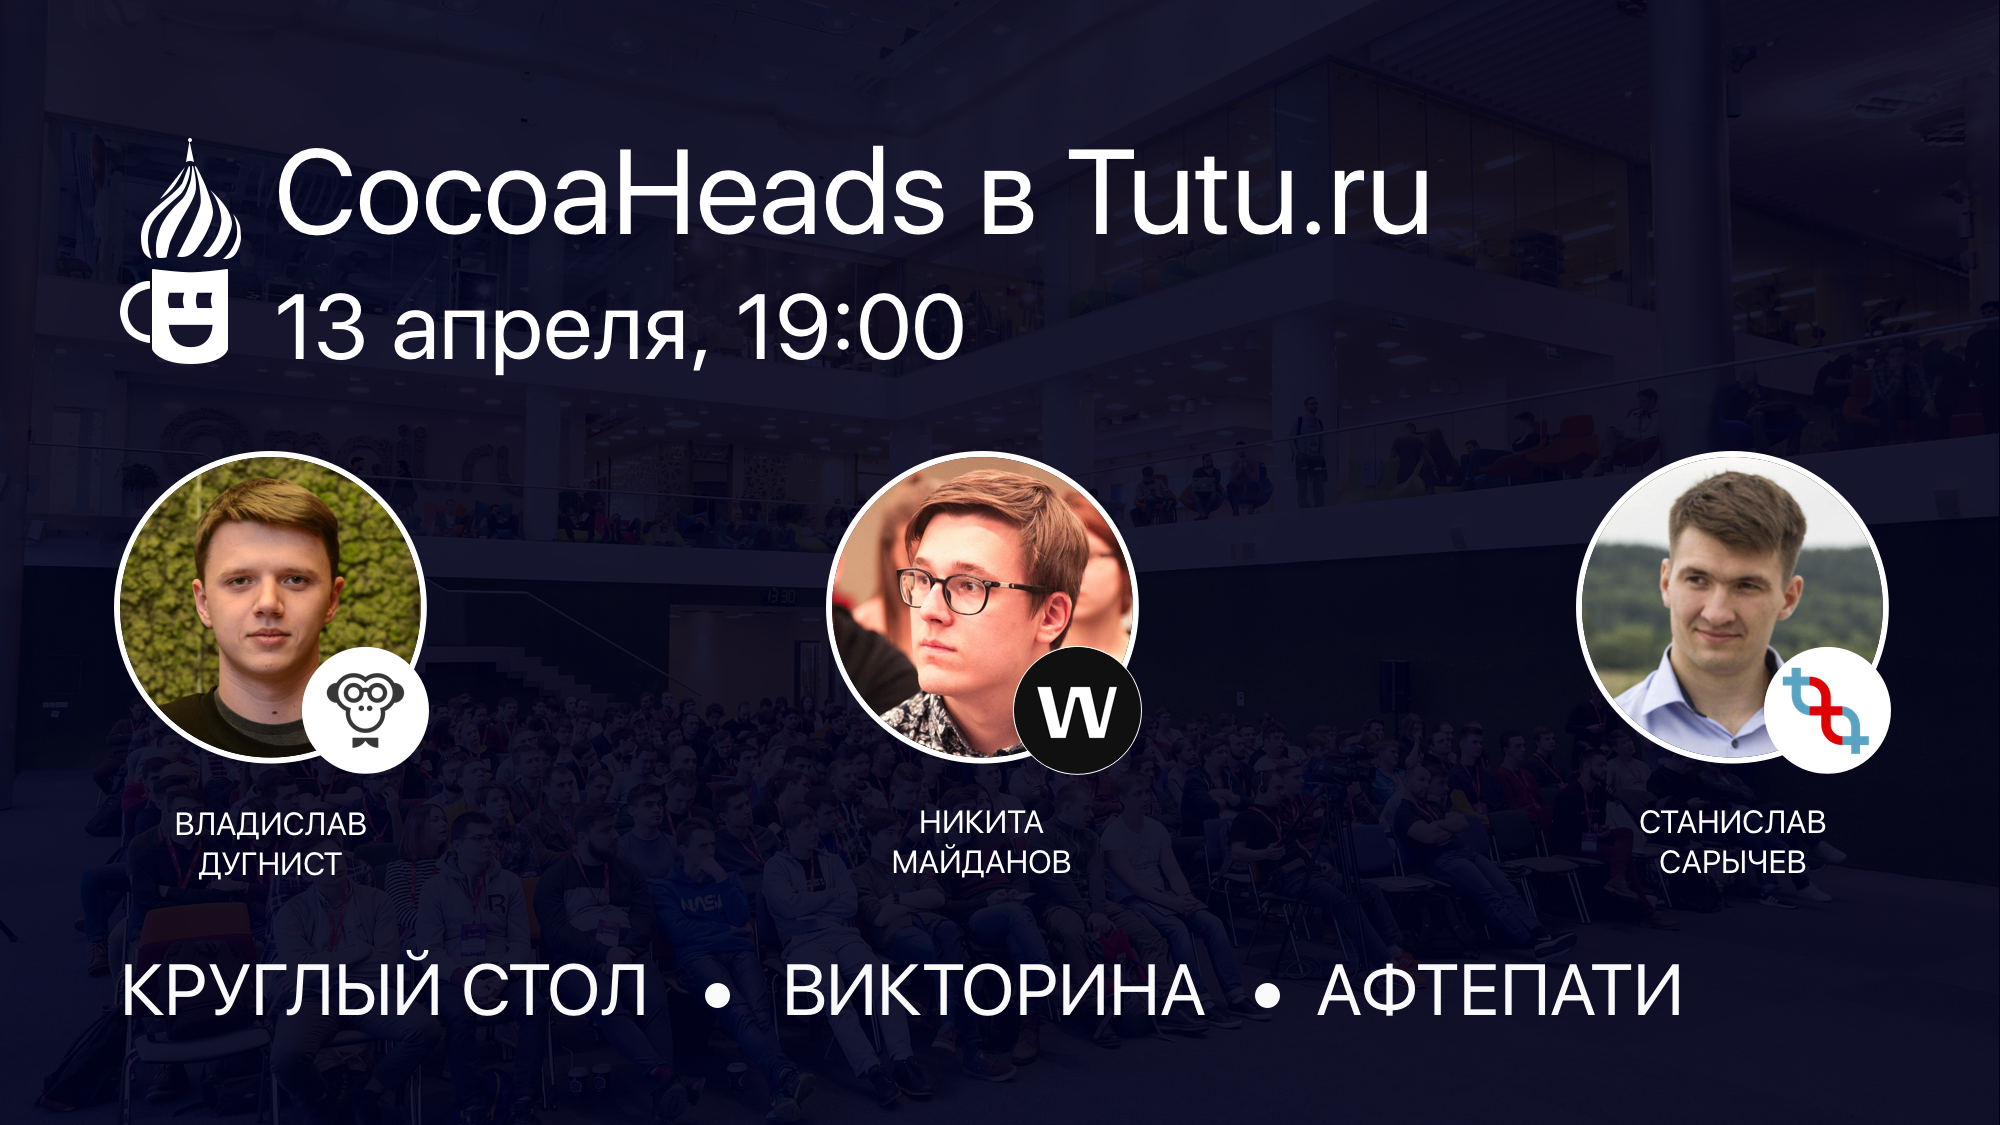 Mitap CocoaHeads in the office of Tutu.ru